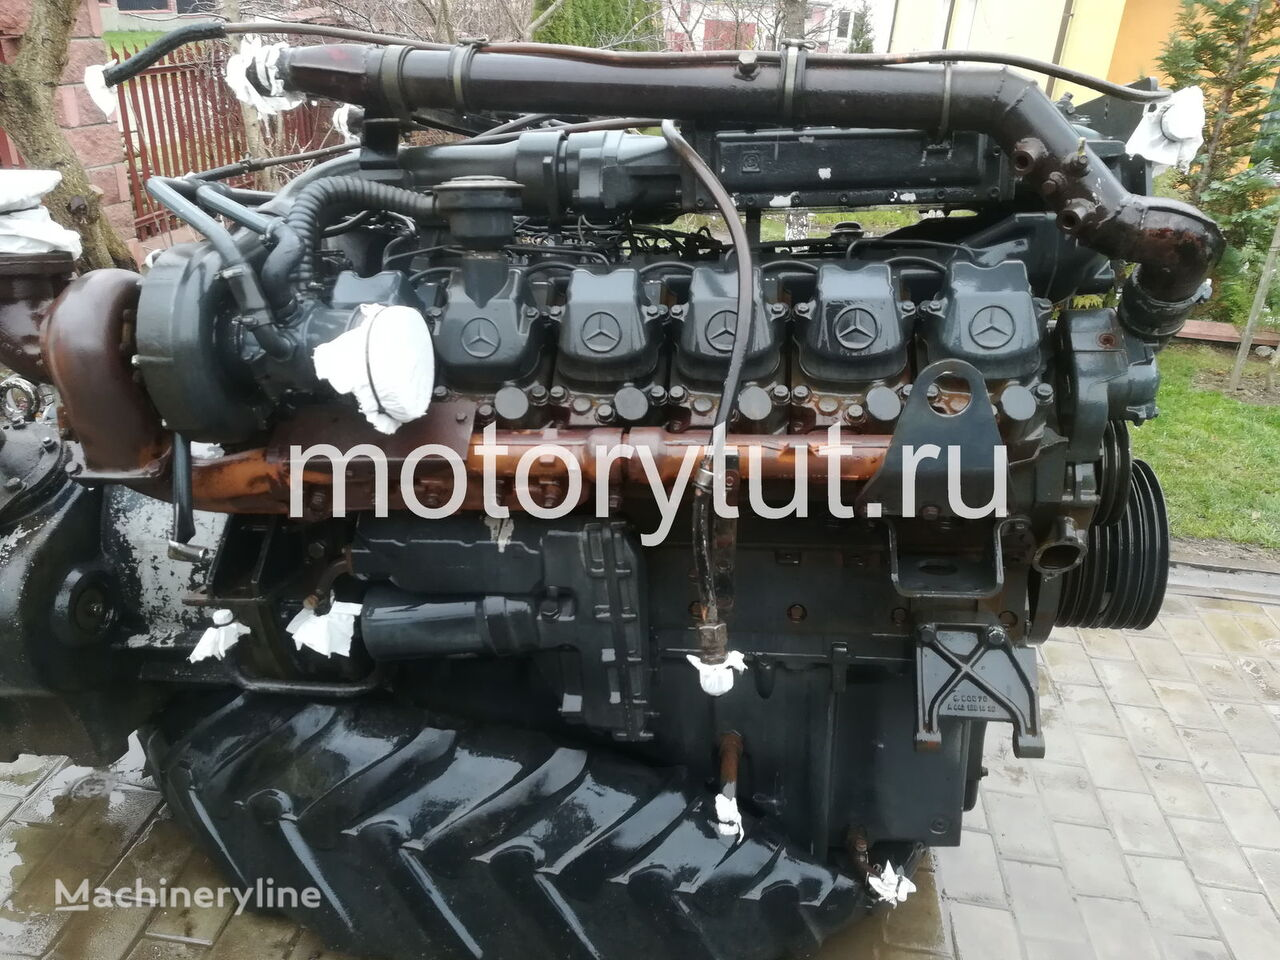 MERCEDES-BENZ OM 444 LA (444.901) engine for WIRTGEN asphalt milling machine